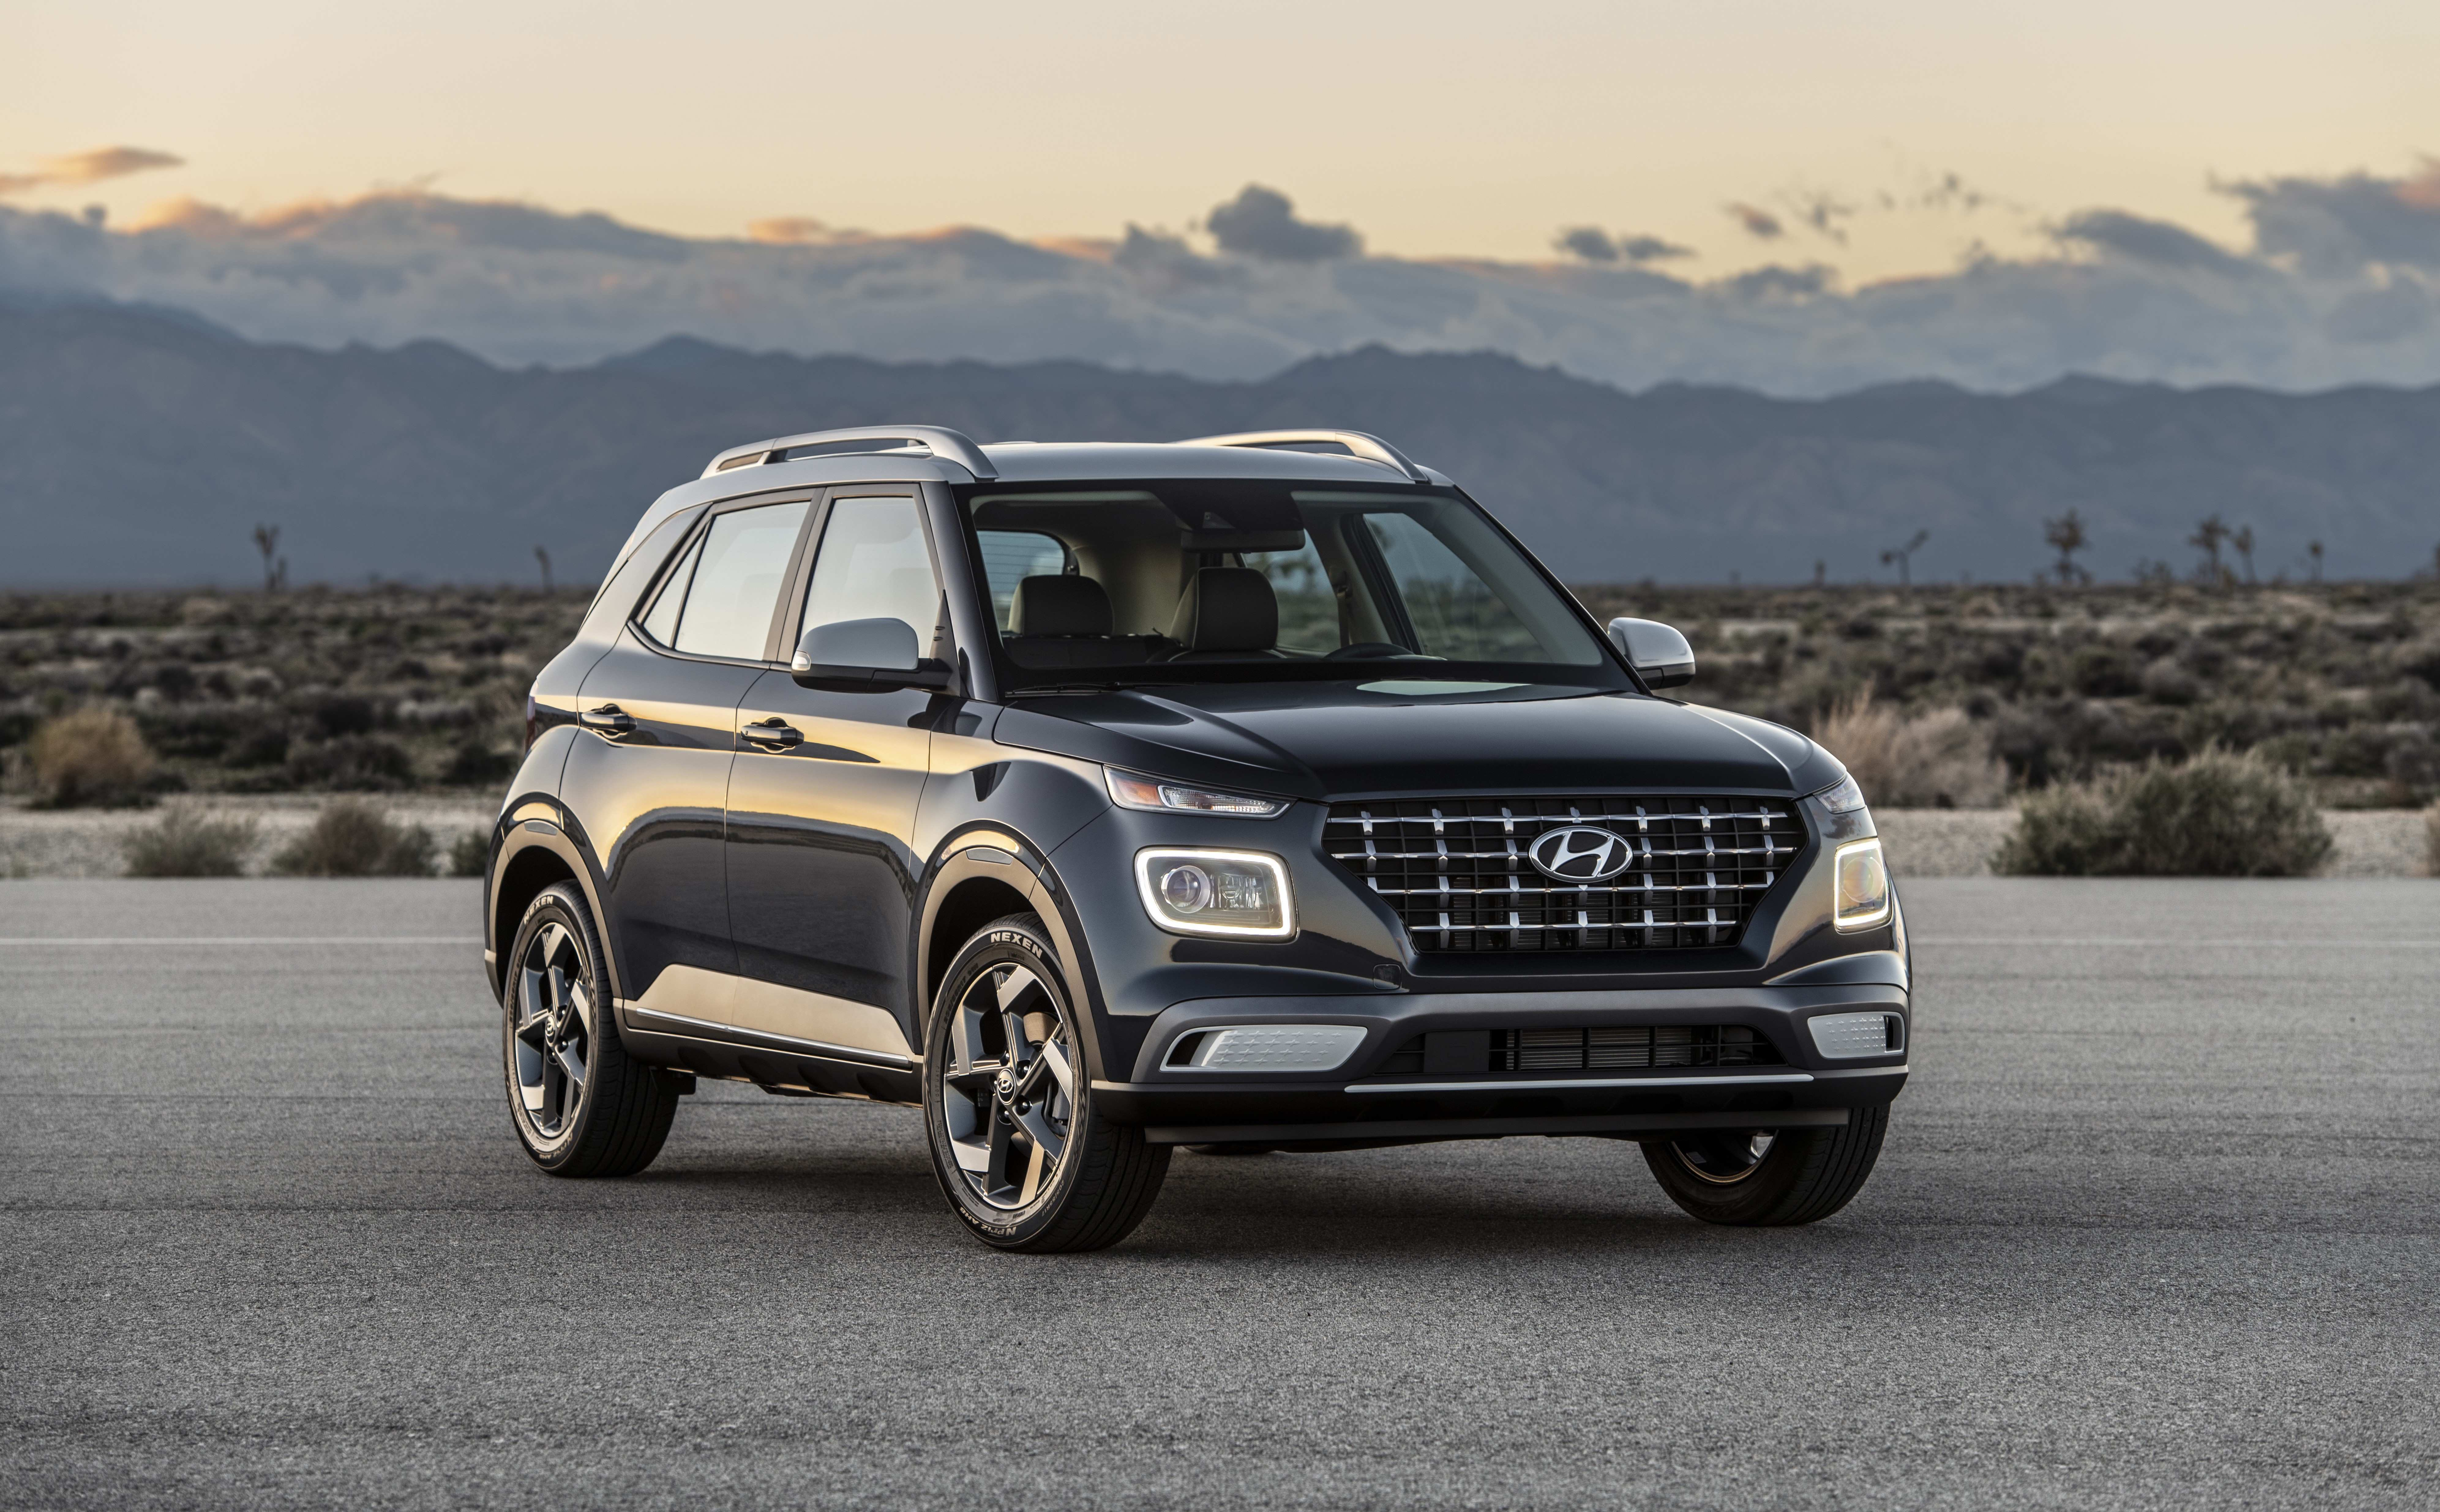 27 All New Hyundai Electric Suv 2020 Prices